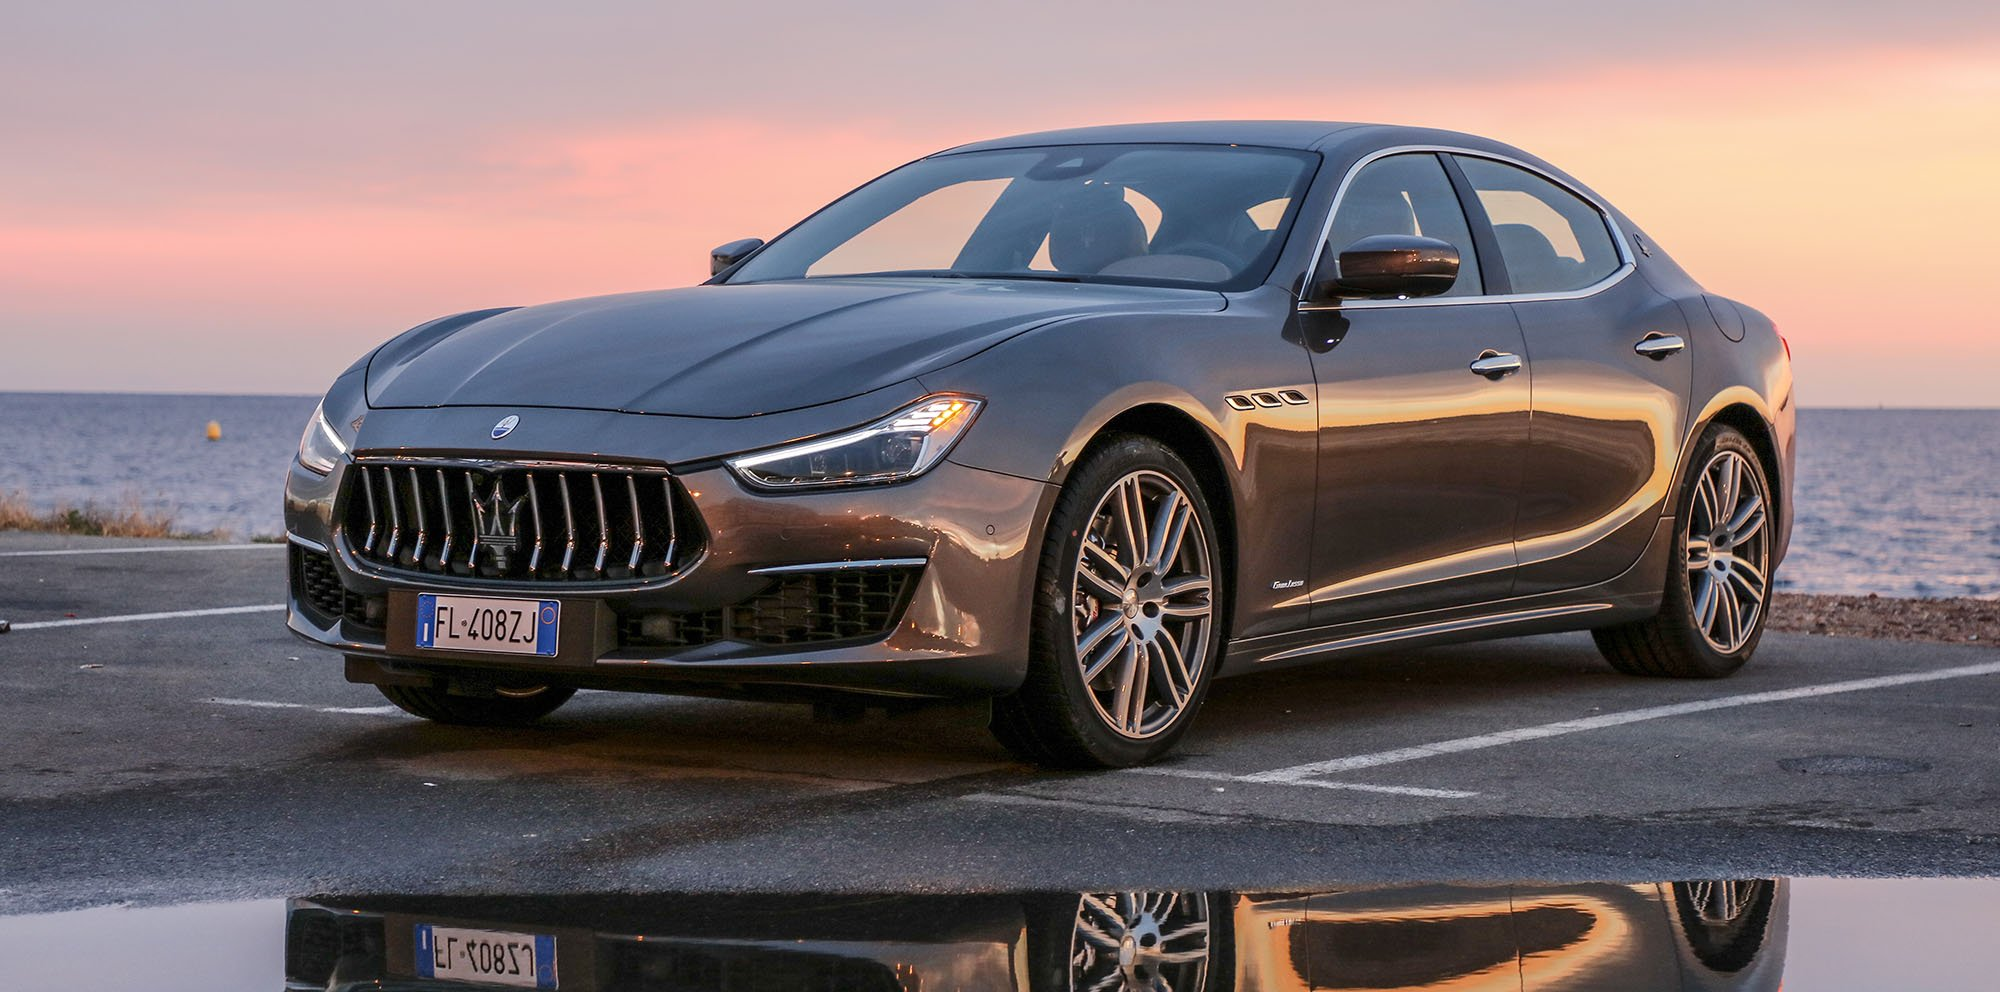 2018 maserati ghibli pricing and specifications photos